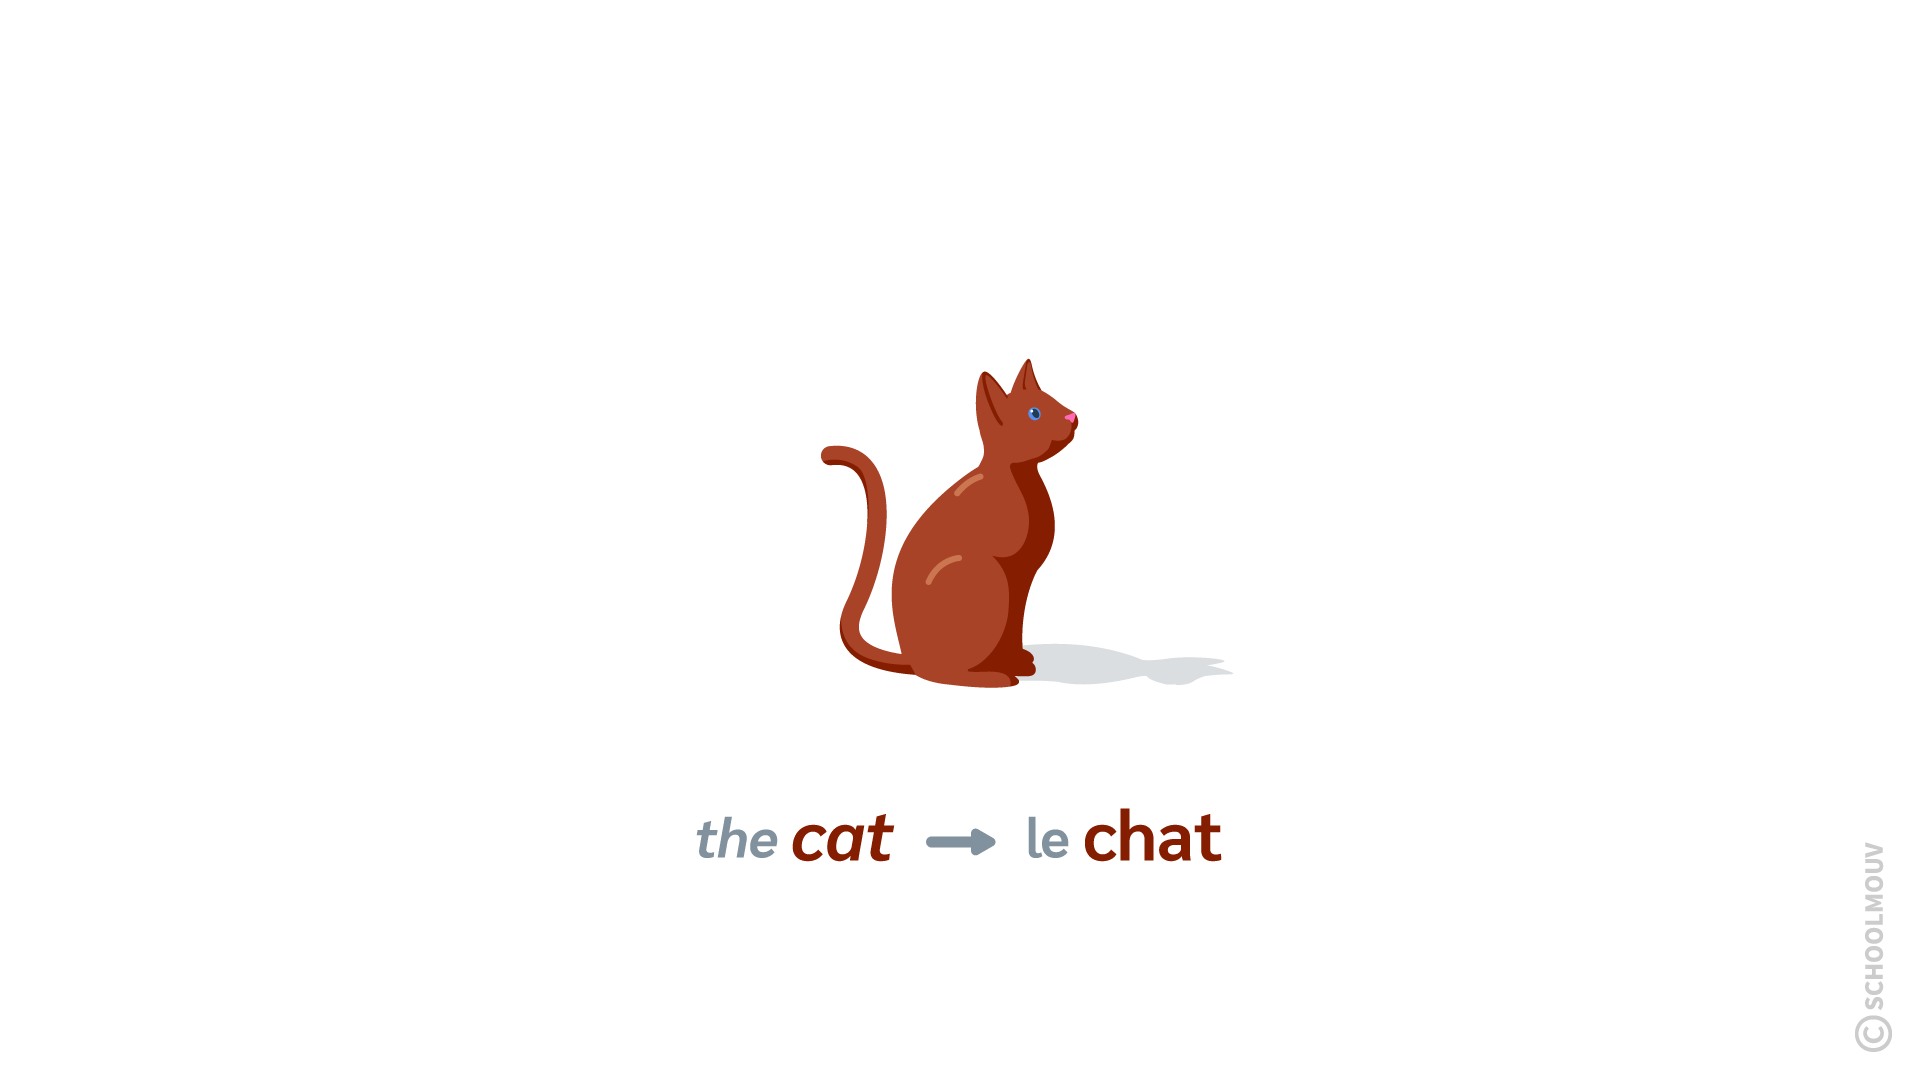 cat chat anglais localisation